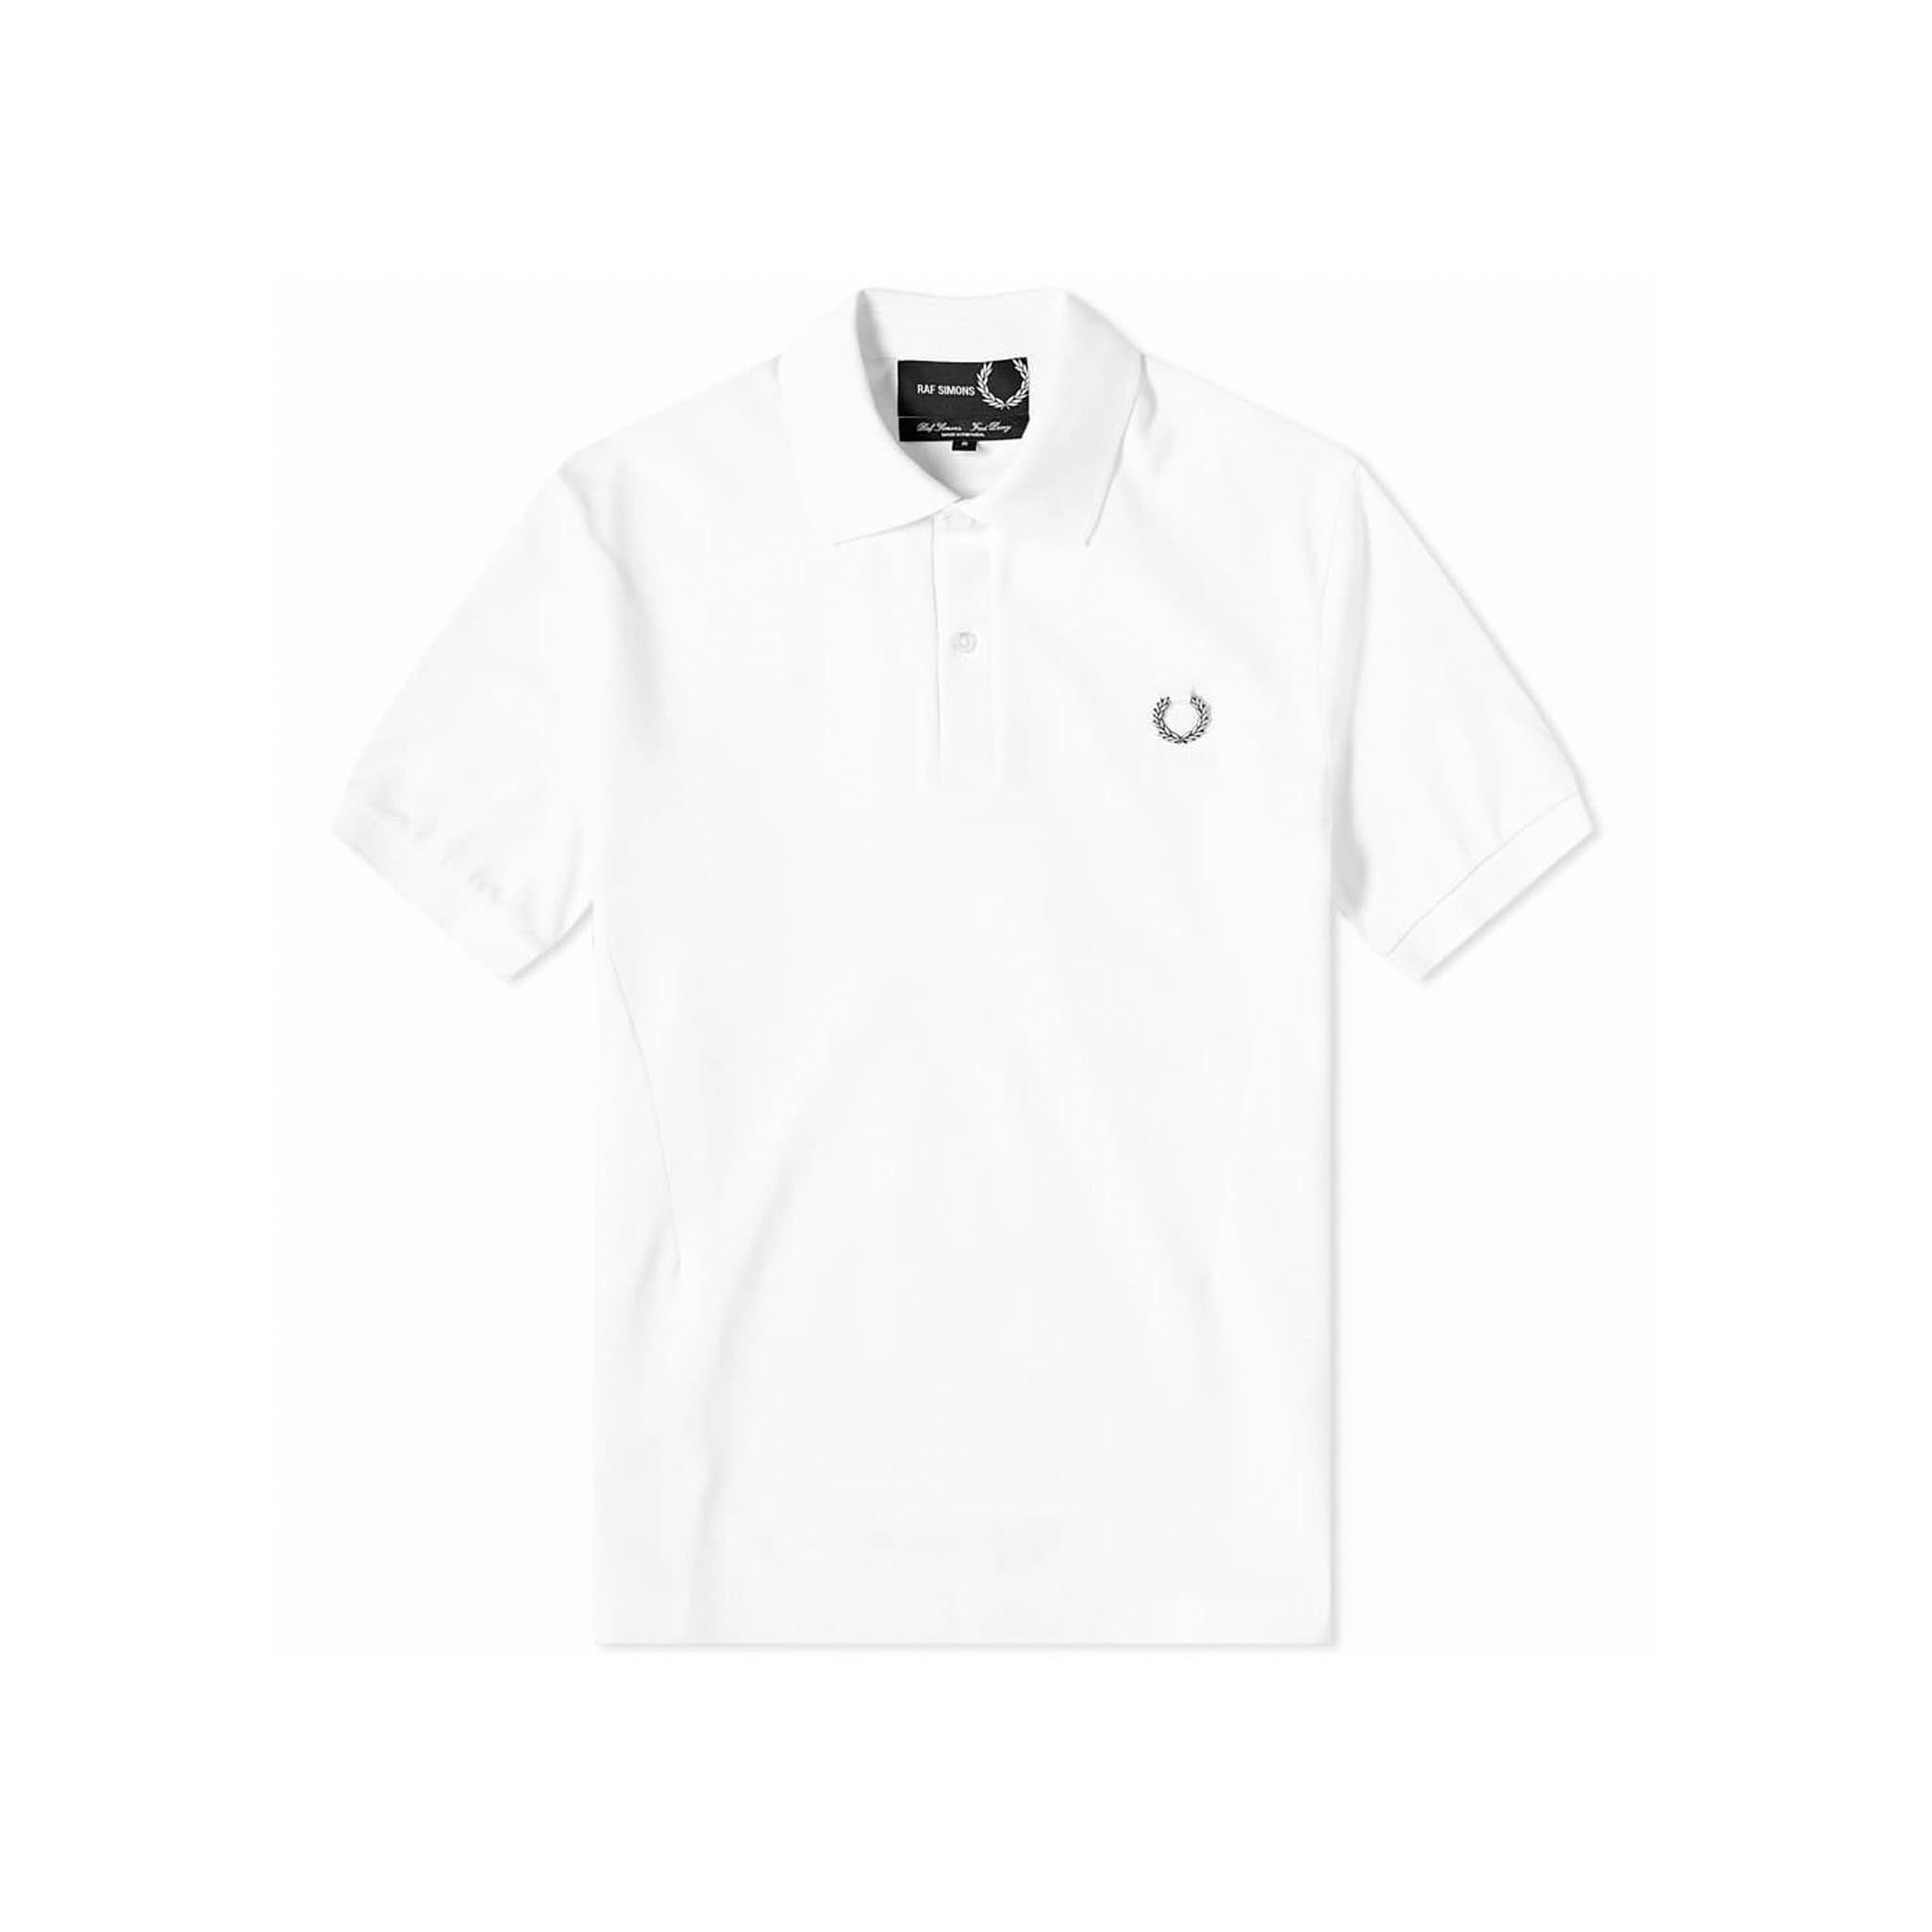 Fred Perry x Raf Simons Laurel Wreath Detail Polo White